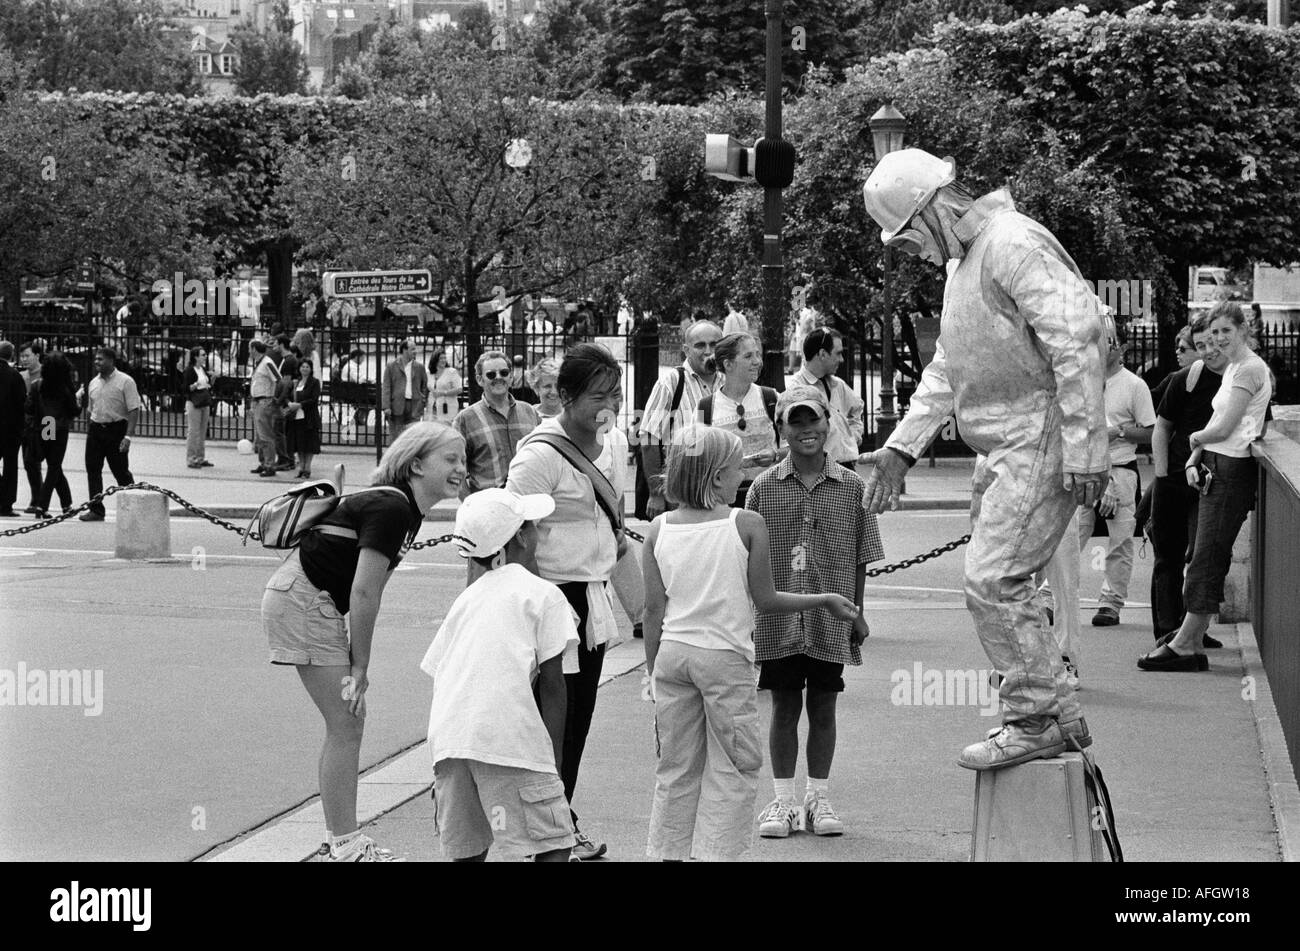 A street entertainer dreesed in silver entertains crowds in Paris France - Stock Image